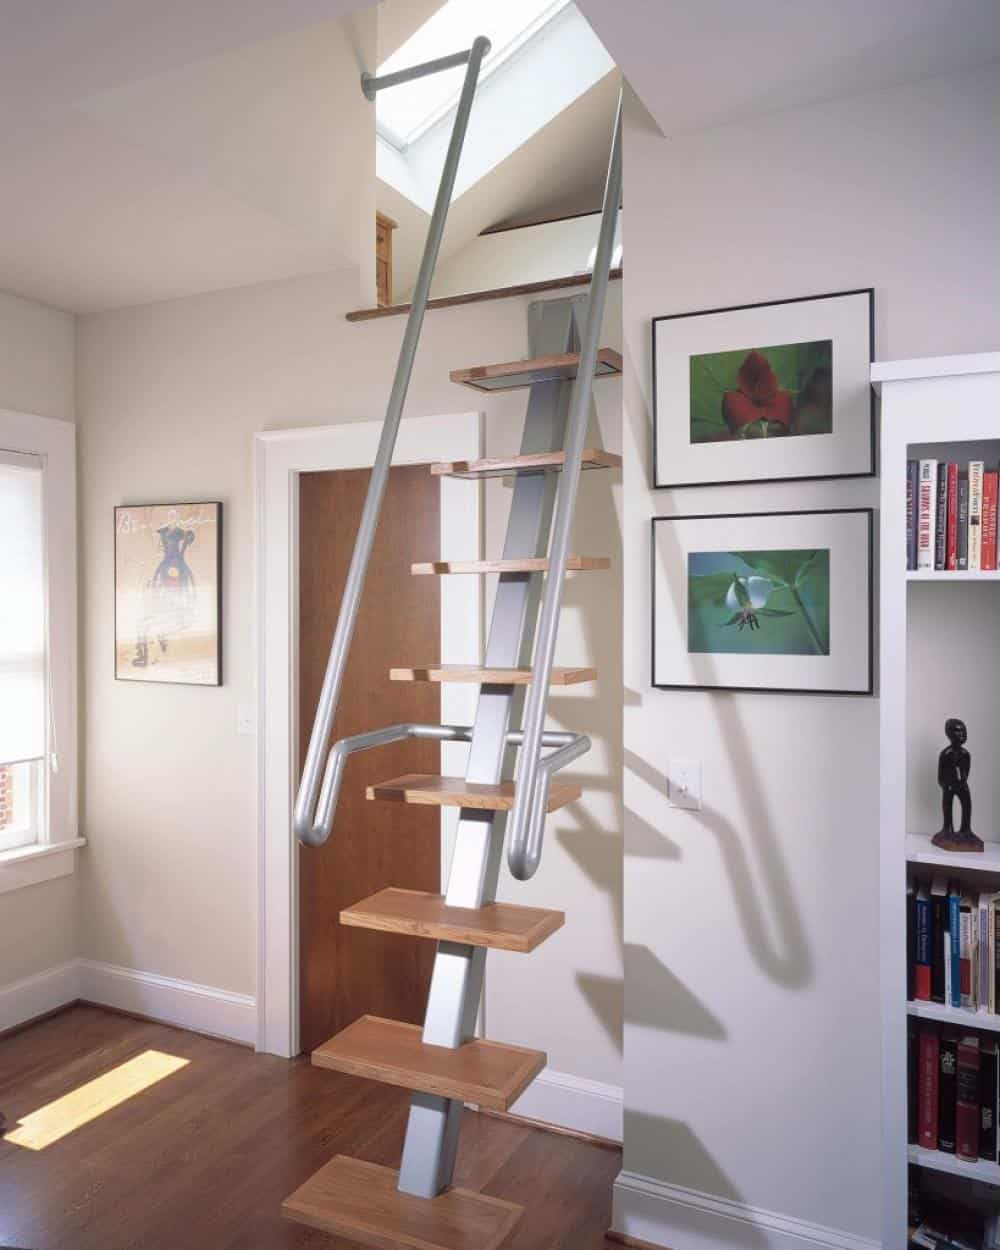 Home Design Ideas For Small Spaces: Unique And Creative Staircase Designs For Modern Homes